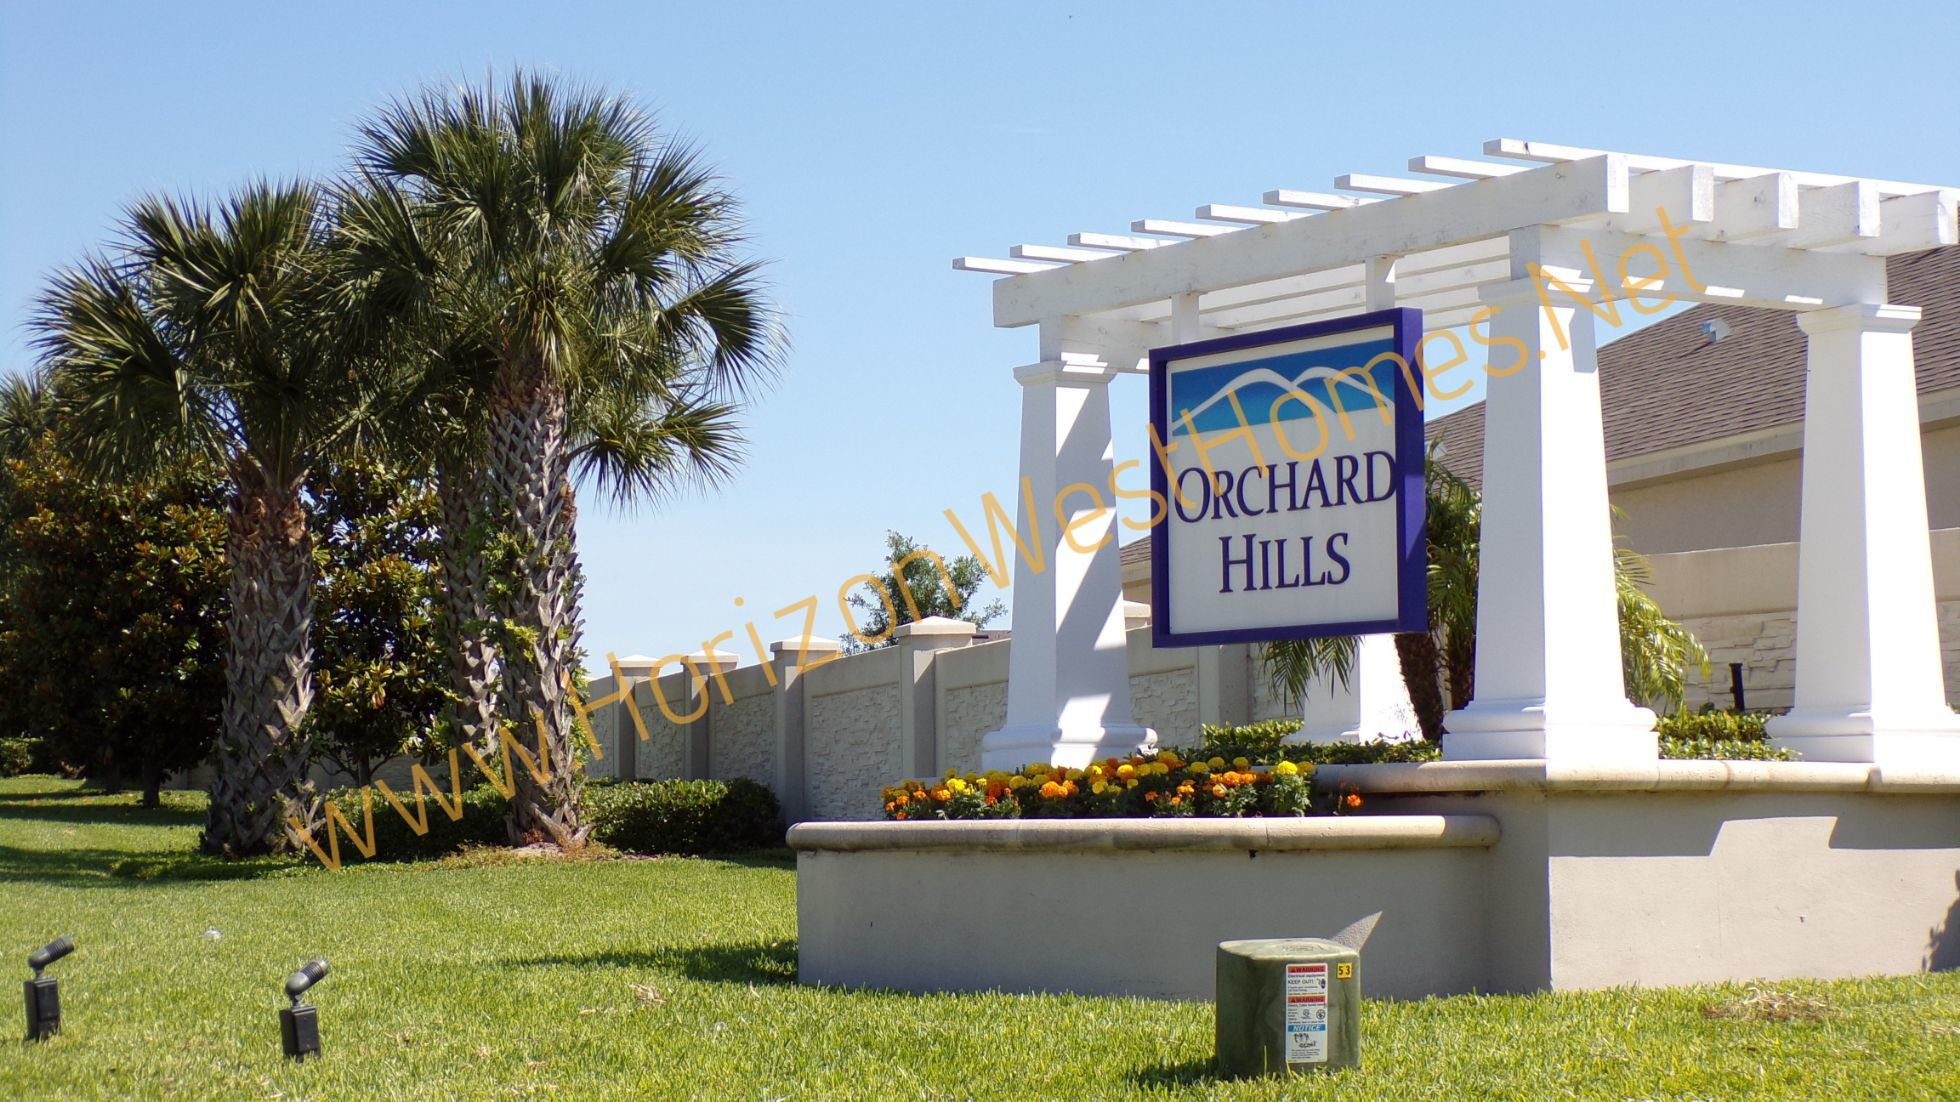 Orchard Hills Winter Garden Florida Entrance Off Tiny Road. Rich Noto Real Estate. Homes for sale in orchard hills.